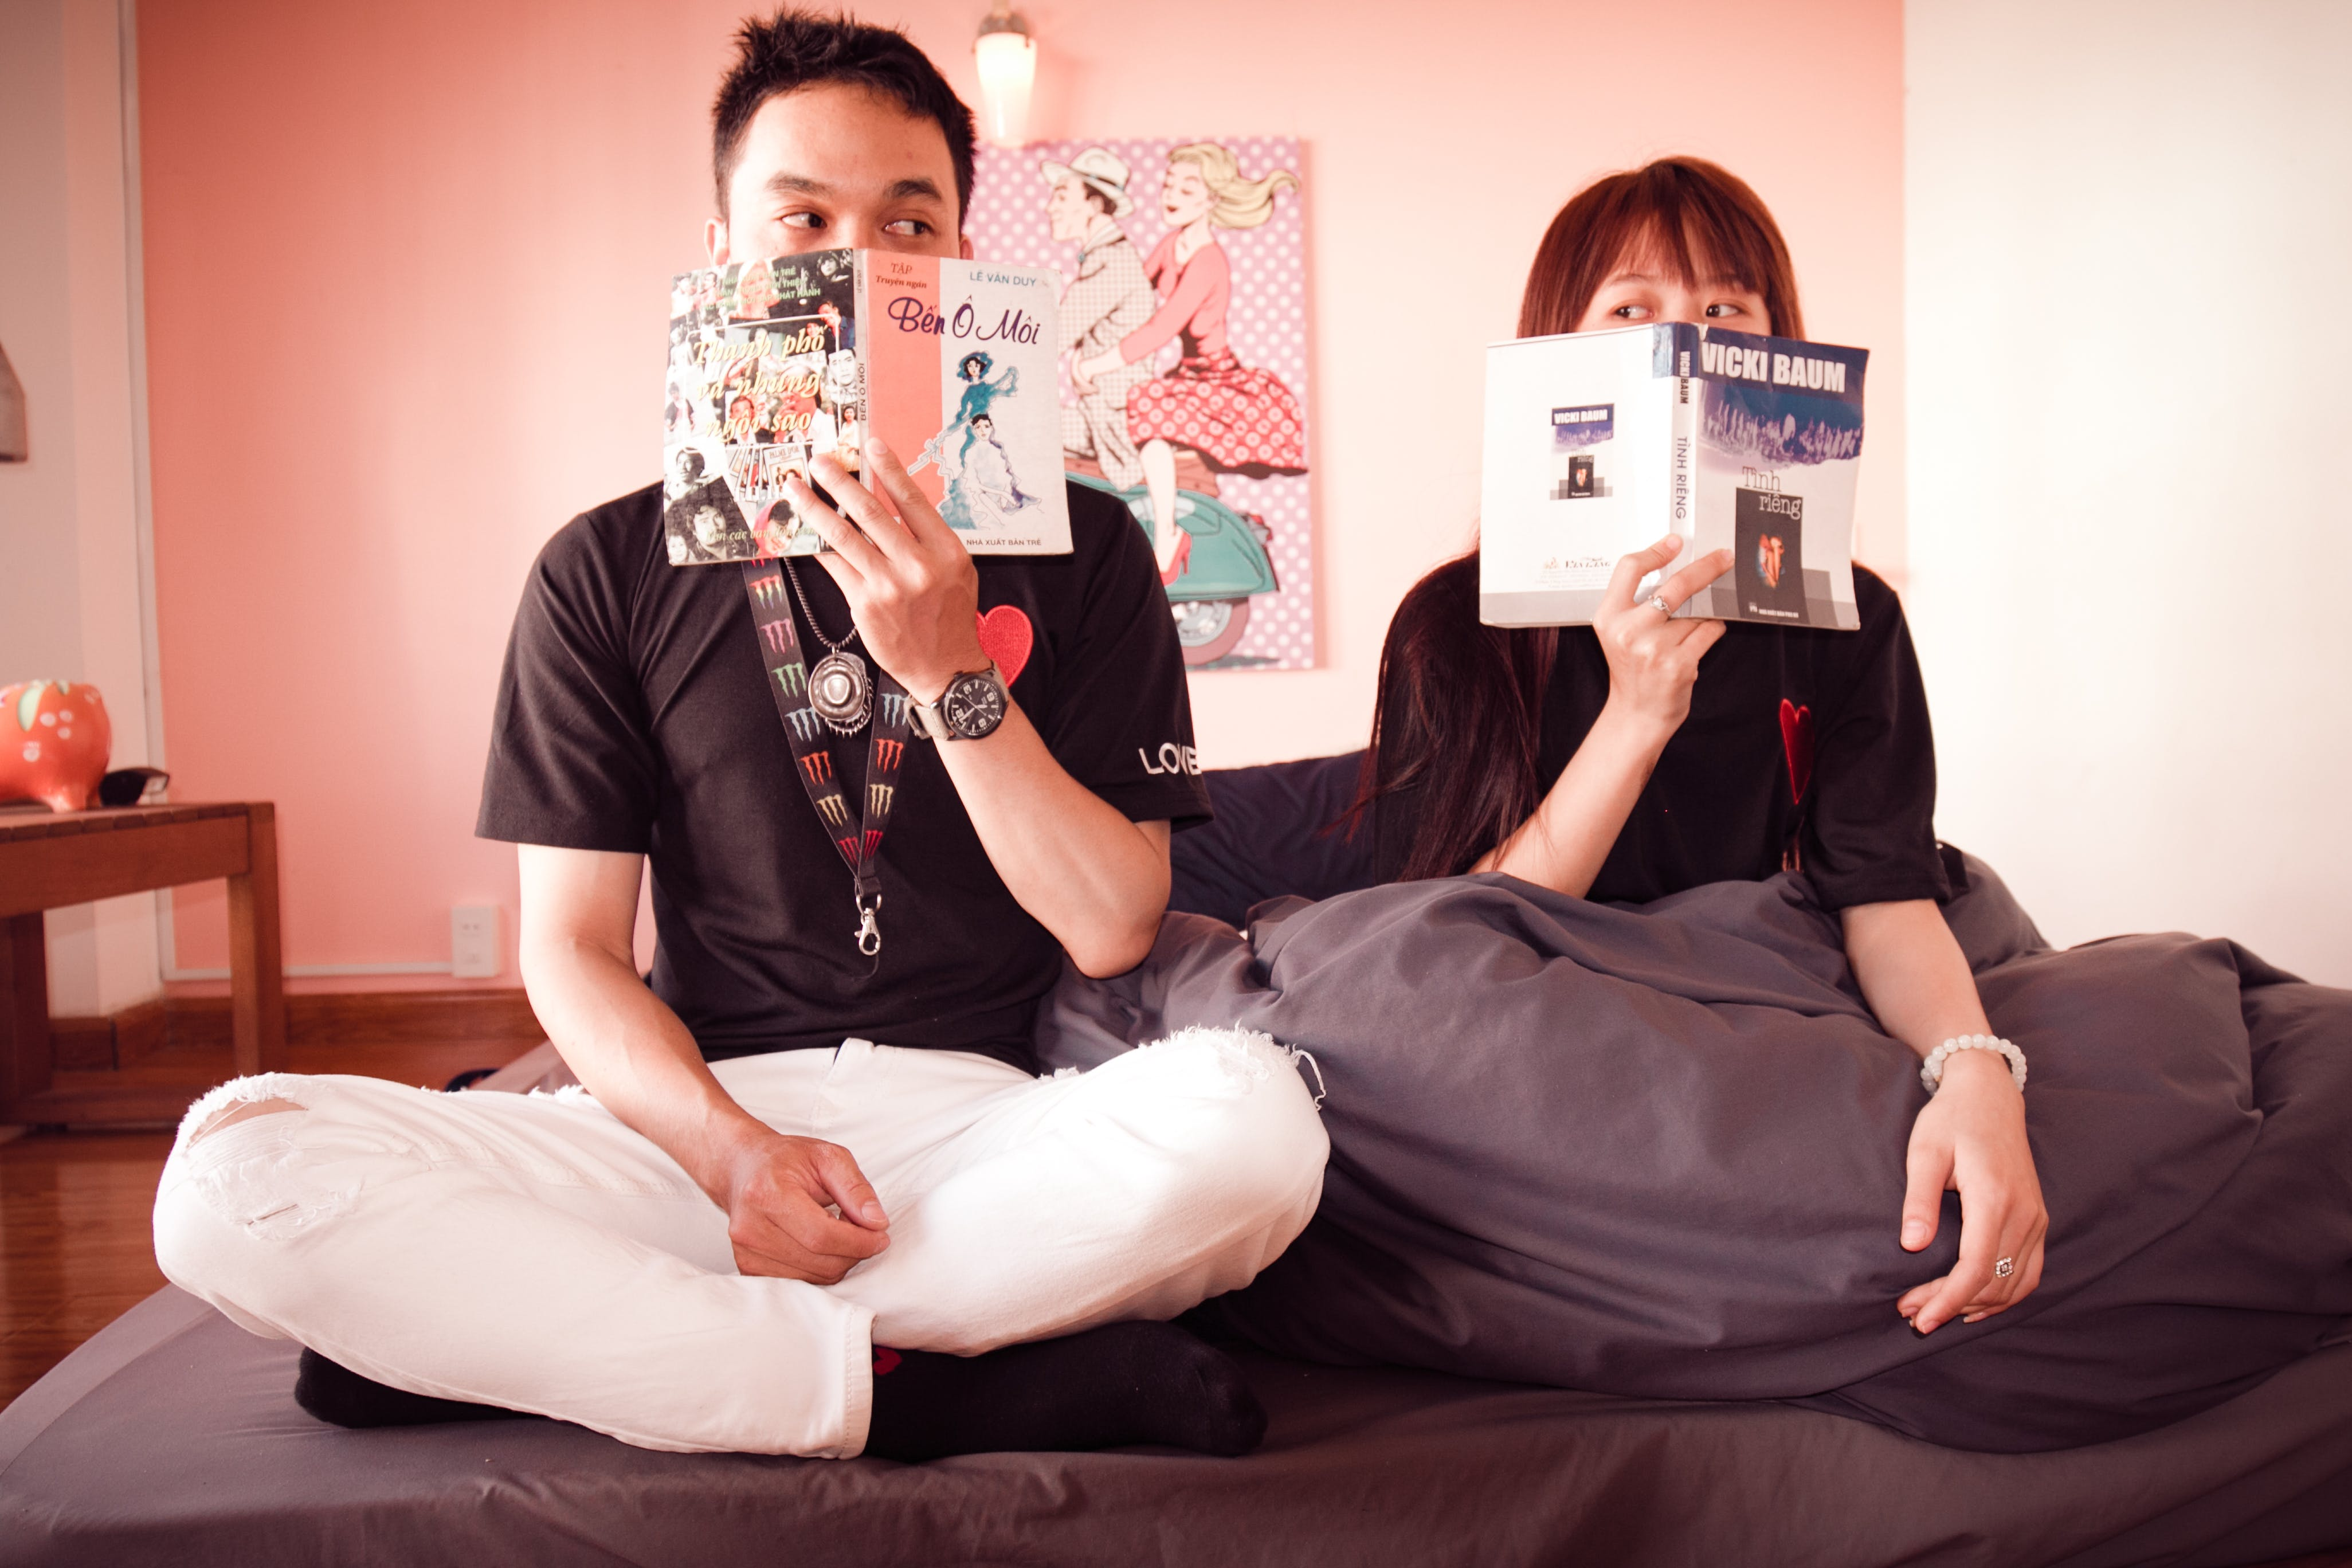 Couple Holding Books Sitting on Bed